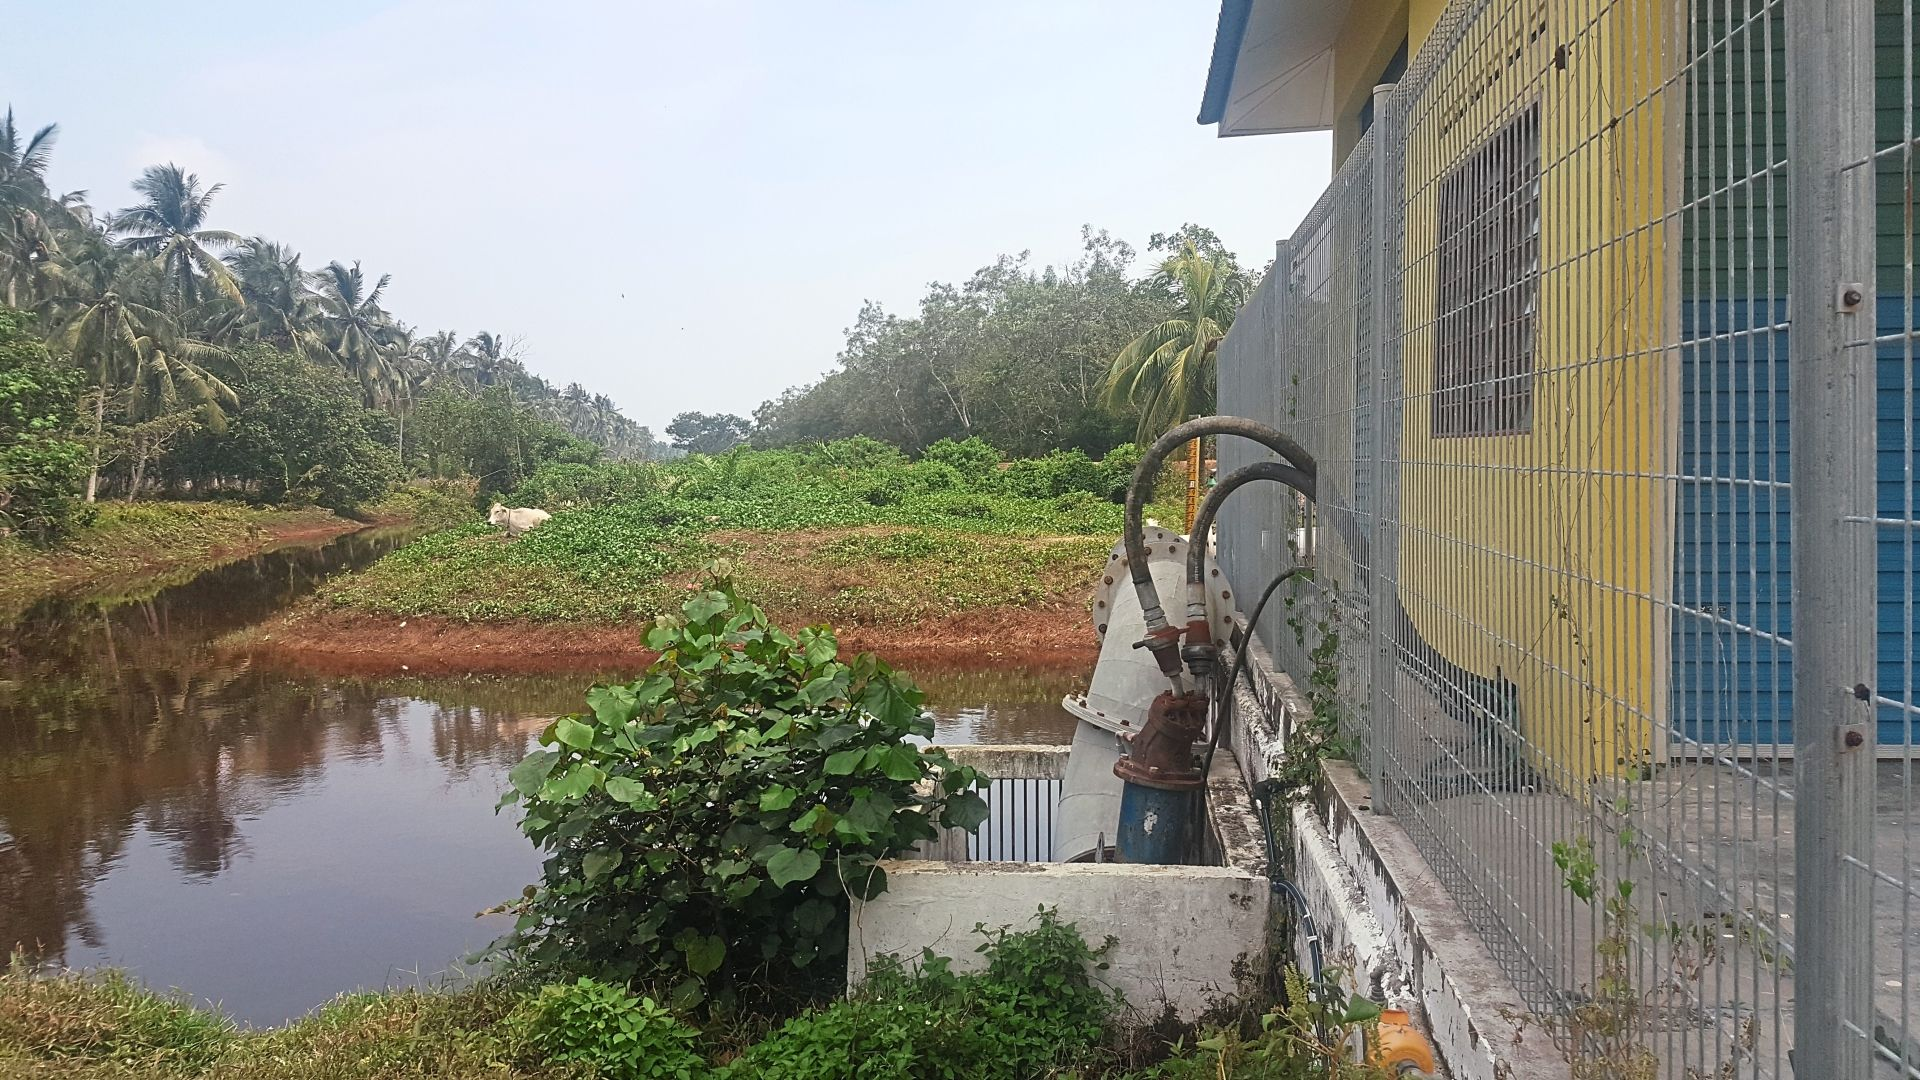 Water released from the floodgate along Sungei Durian and another floodgate are suspected to be cause of fishes dying.